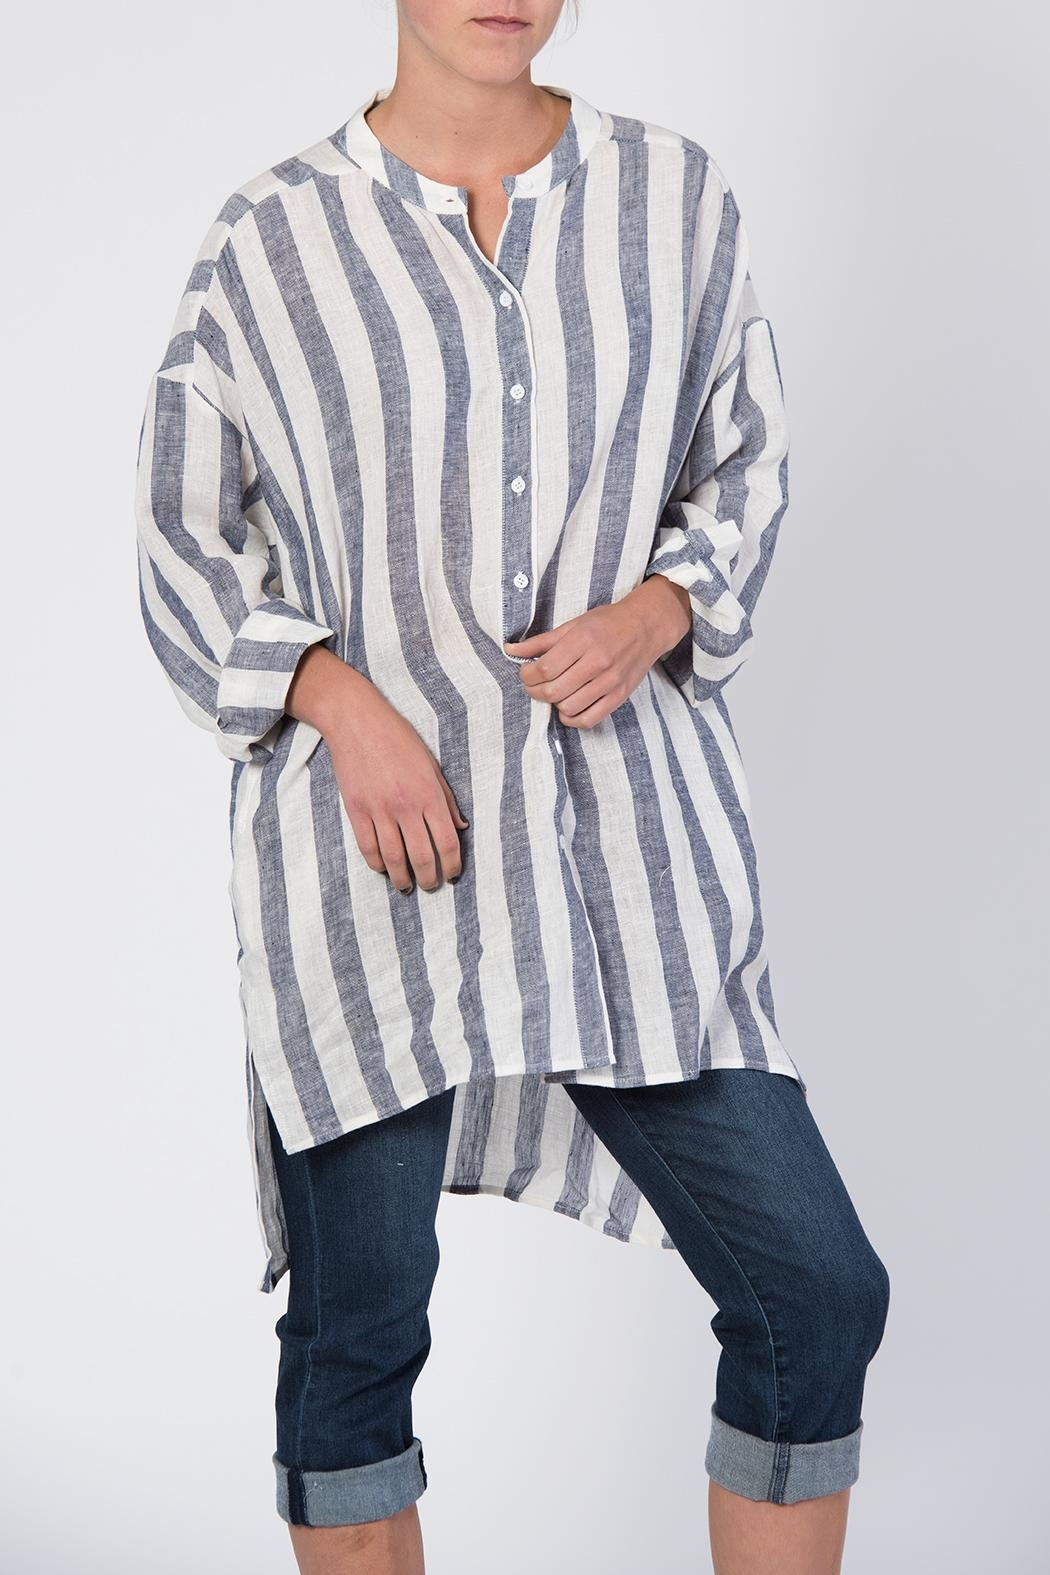 BEULAH STYLE Blue & White Striped Top - Main Image